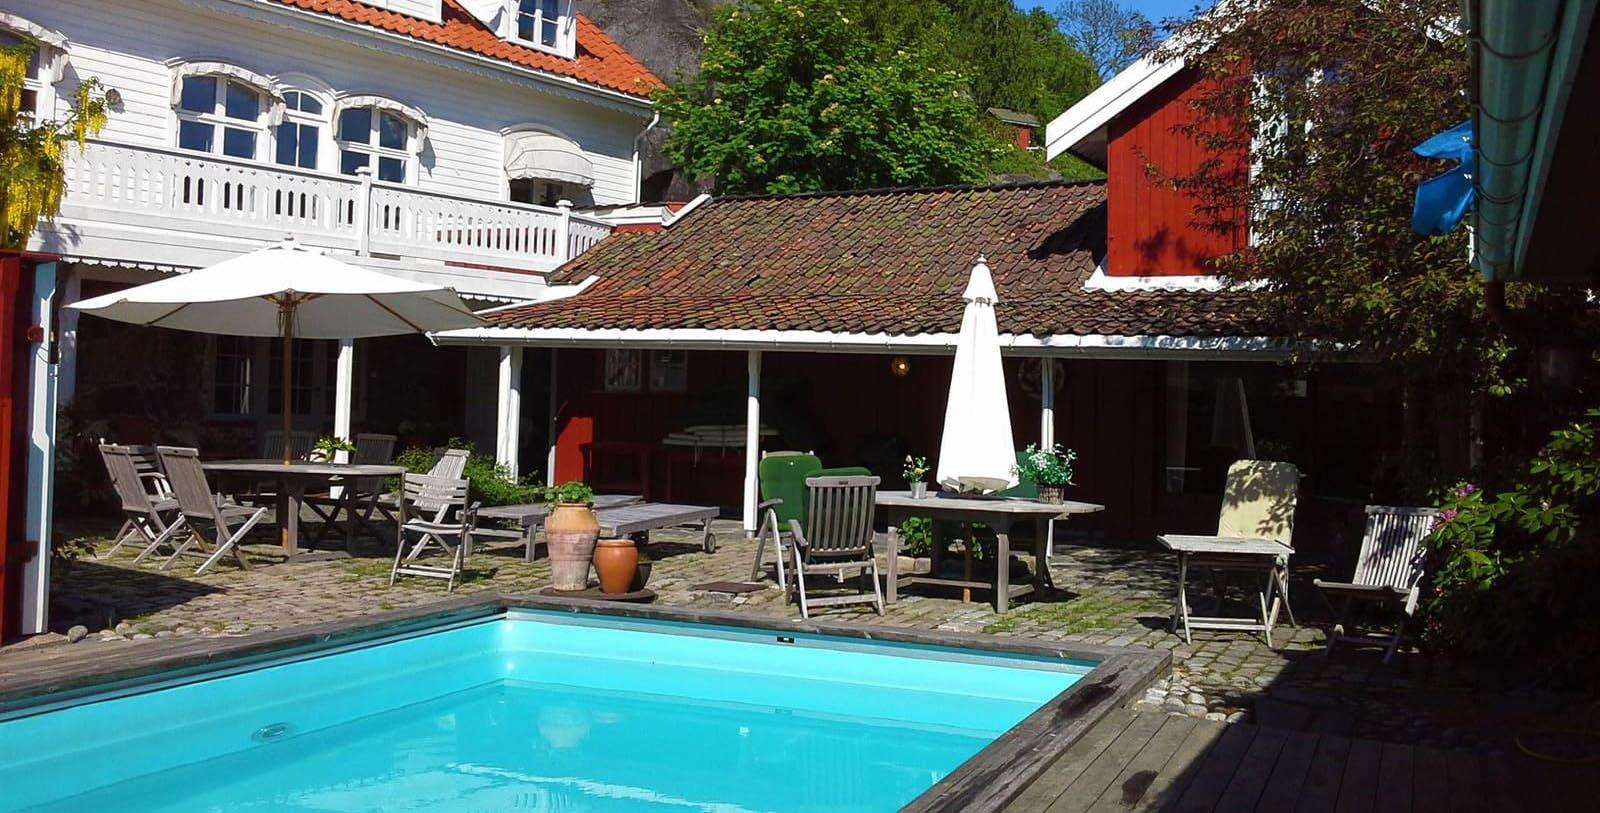 Image of outdoor seating area Det Lille Hotel, 1750, Member of Historic Hotels Worldwide, Risør, Norway, Explore